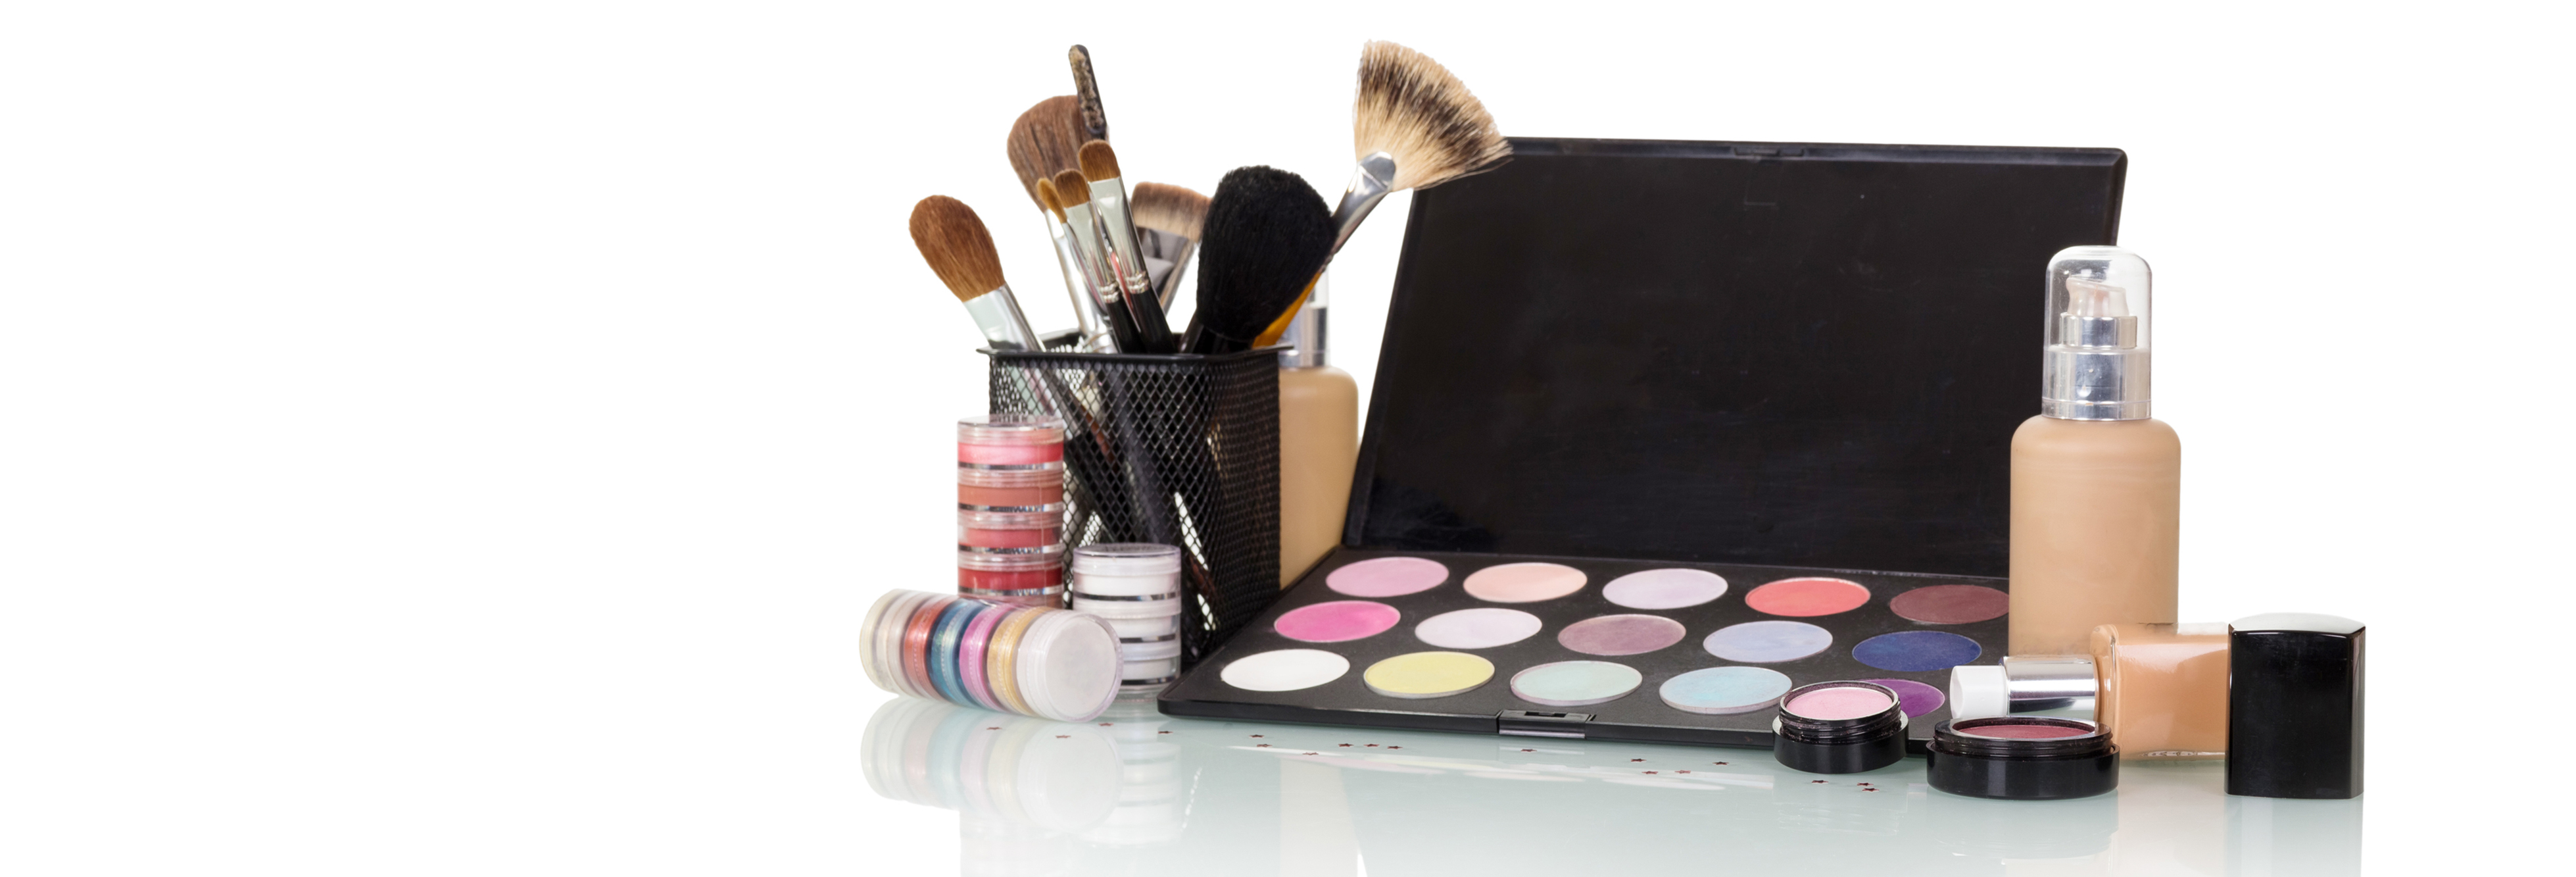 Cosmetics, Personal Care, and Food Testing